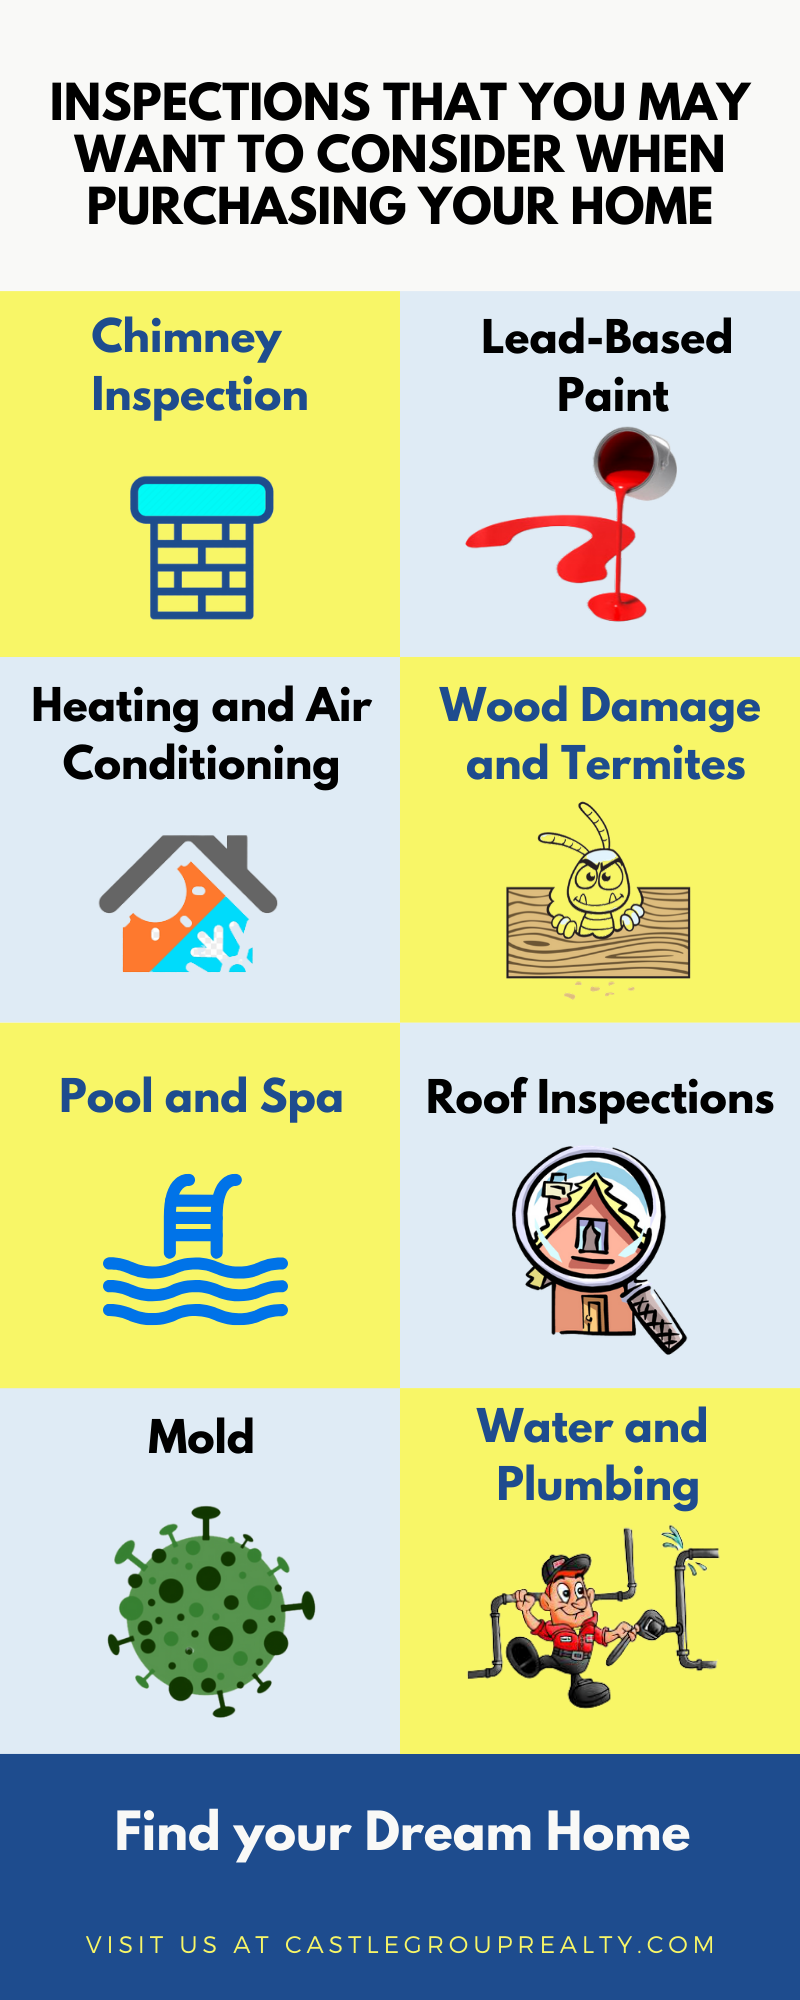 Here are some home inspections that you may want to consider when purchasing your home. The Castle Group , our real estate firm in CA will help you to fulfill your real estate goals.  #homeinspections #realestate #realtor #california #usa #wooddamage #leadbasedpaint #airconditioning #roofinspections #mold #waterandplumbling #dream #beautiful #thecastlegroup #justlisted #realtor #bayarearealestate #realestateforsale #milliondollarhome #realestateexpert #propertyforsale #homeforsale #broker